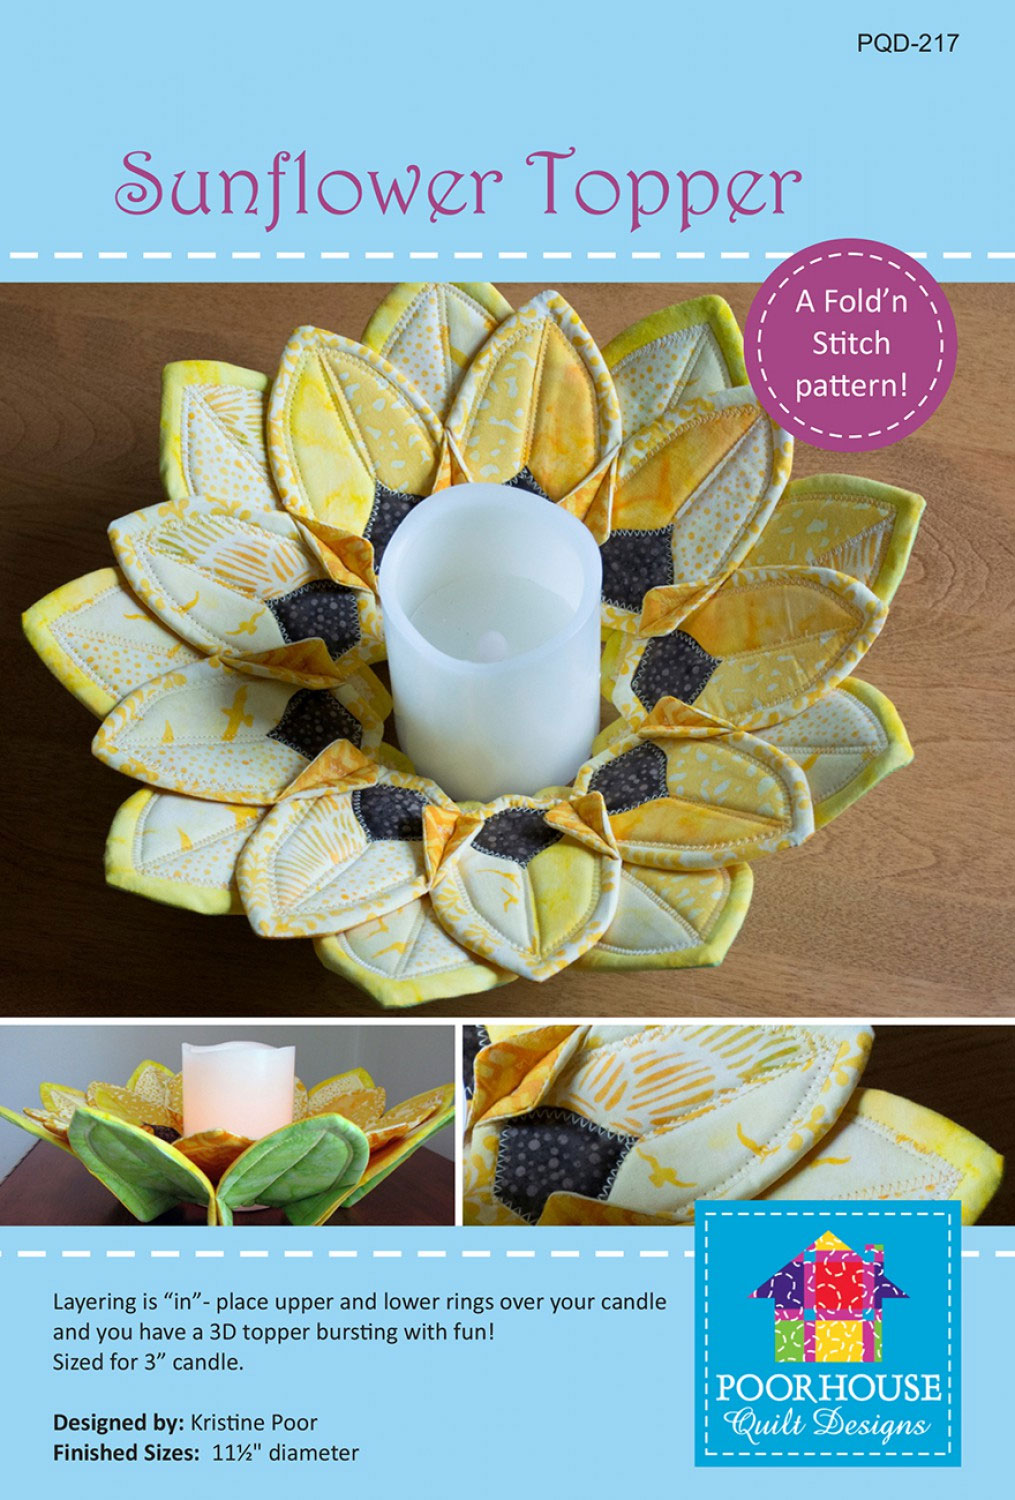 Sunflower-Table-Topper-sewing-pattern-Poorhouse-Designs-front